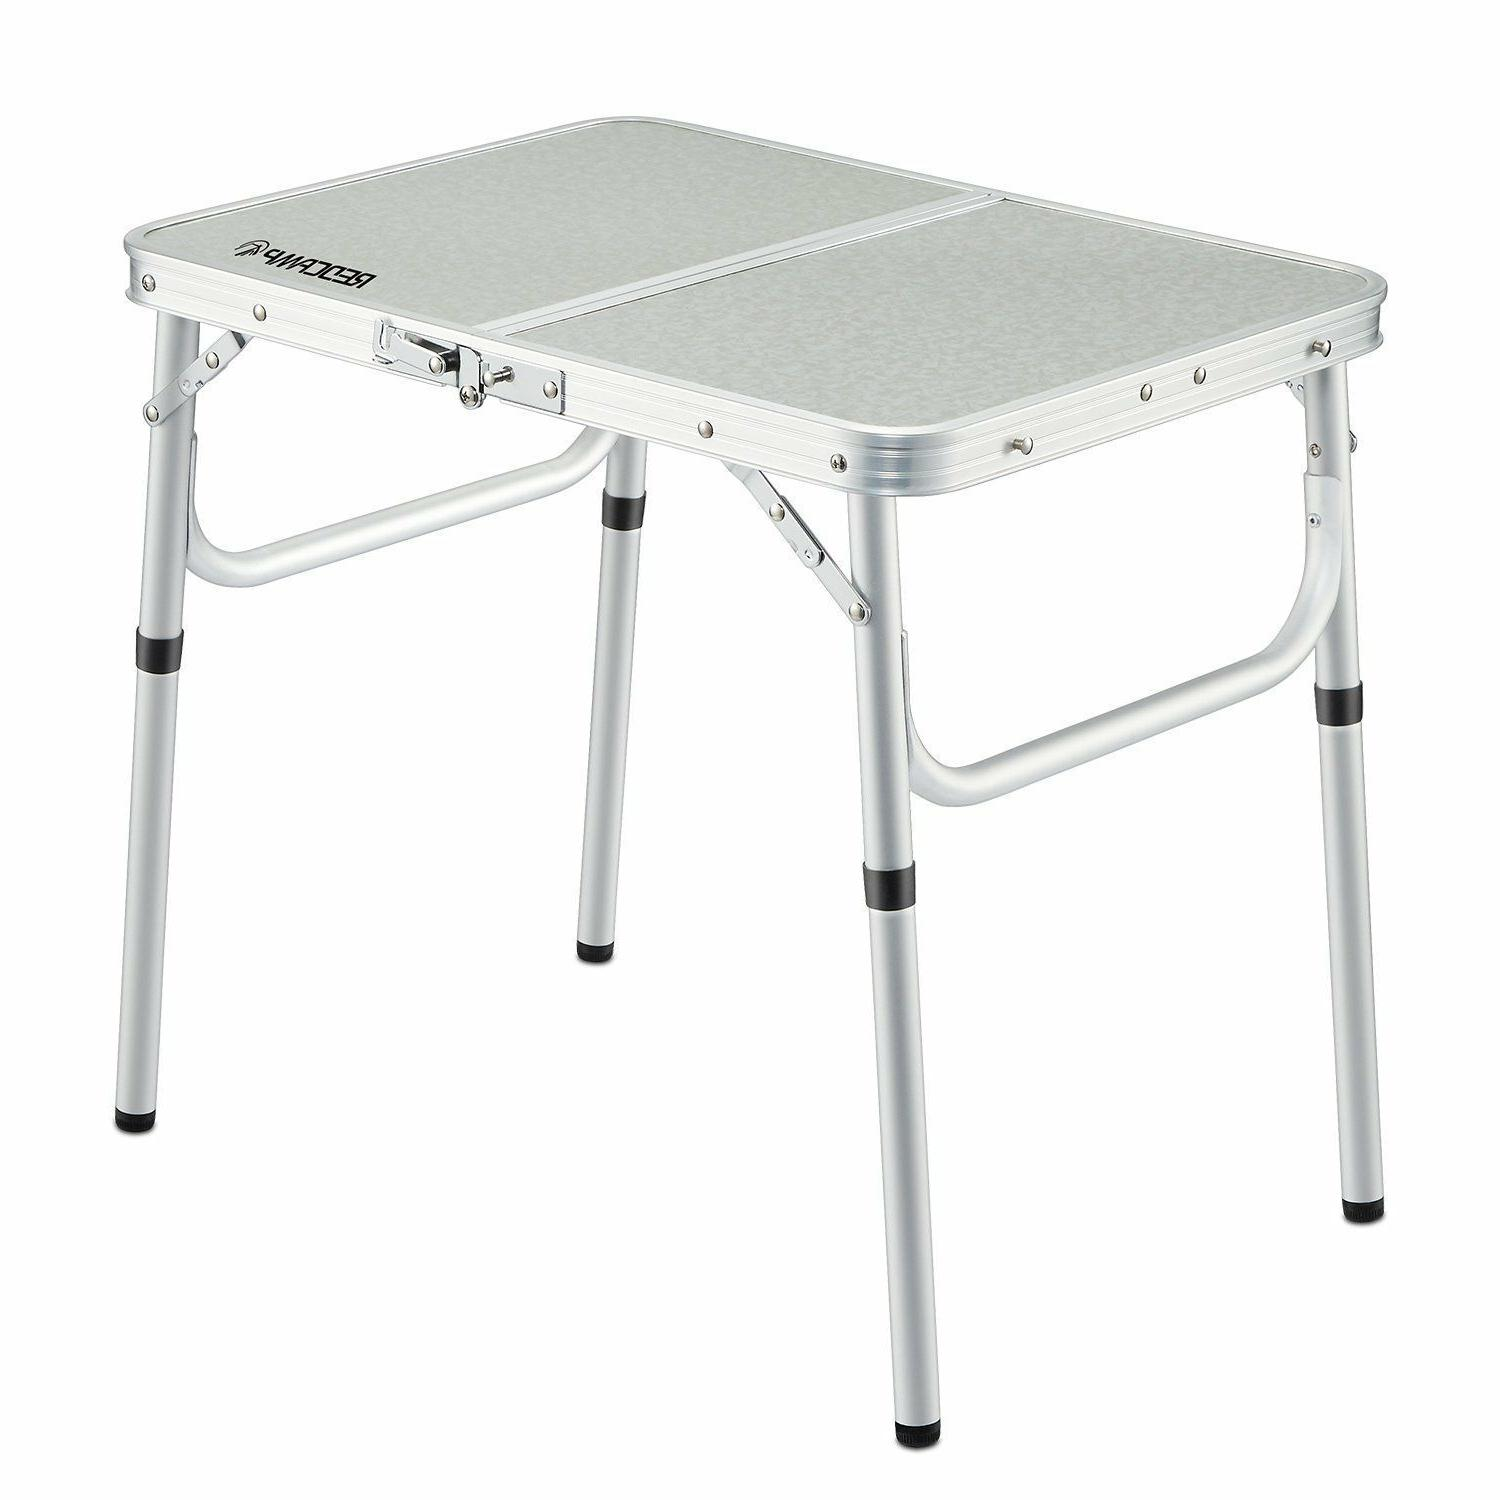 REDCAMP Camping Table Adjustable Picnic BBQ